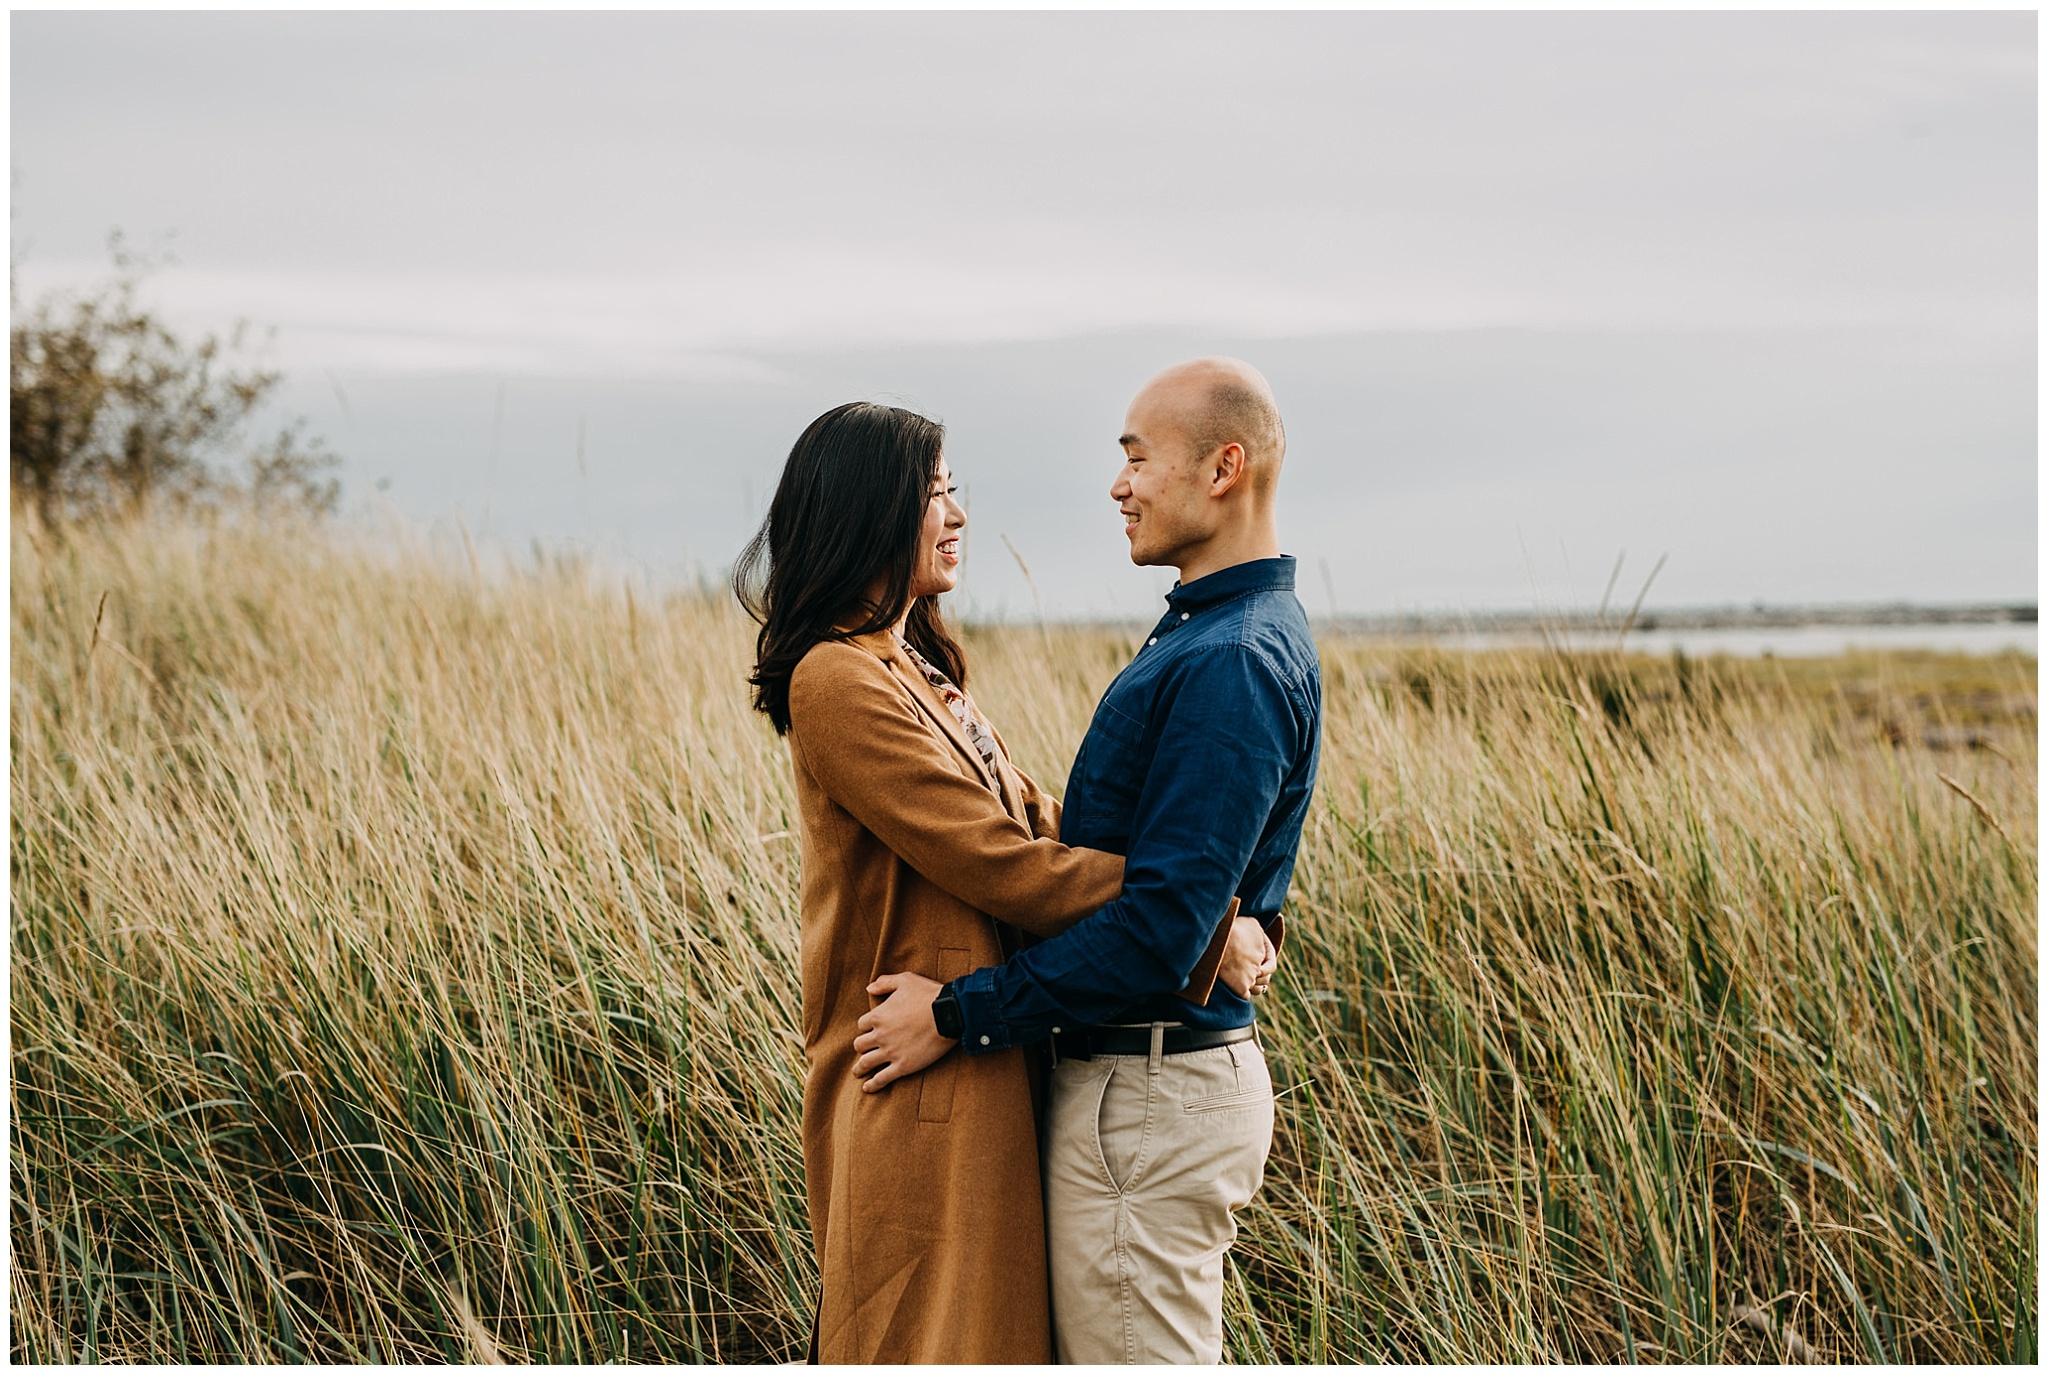 iona-beach-engagement-session-aileen-choi-photo_0002.jpg